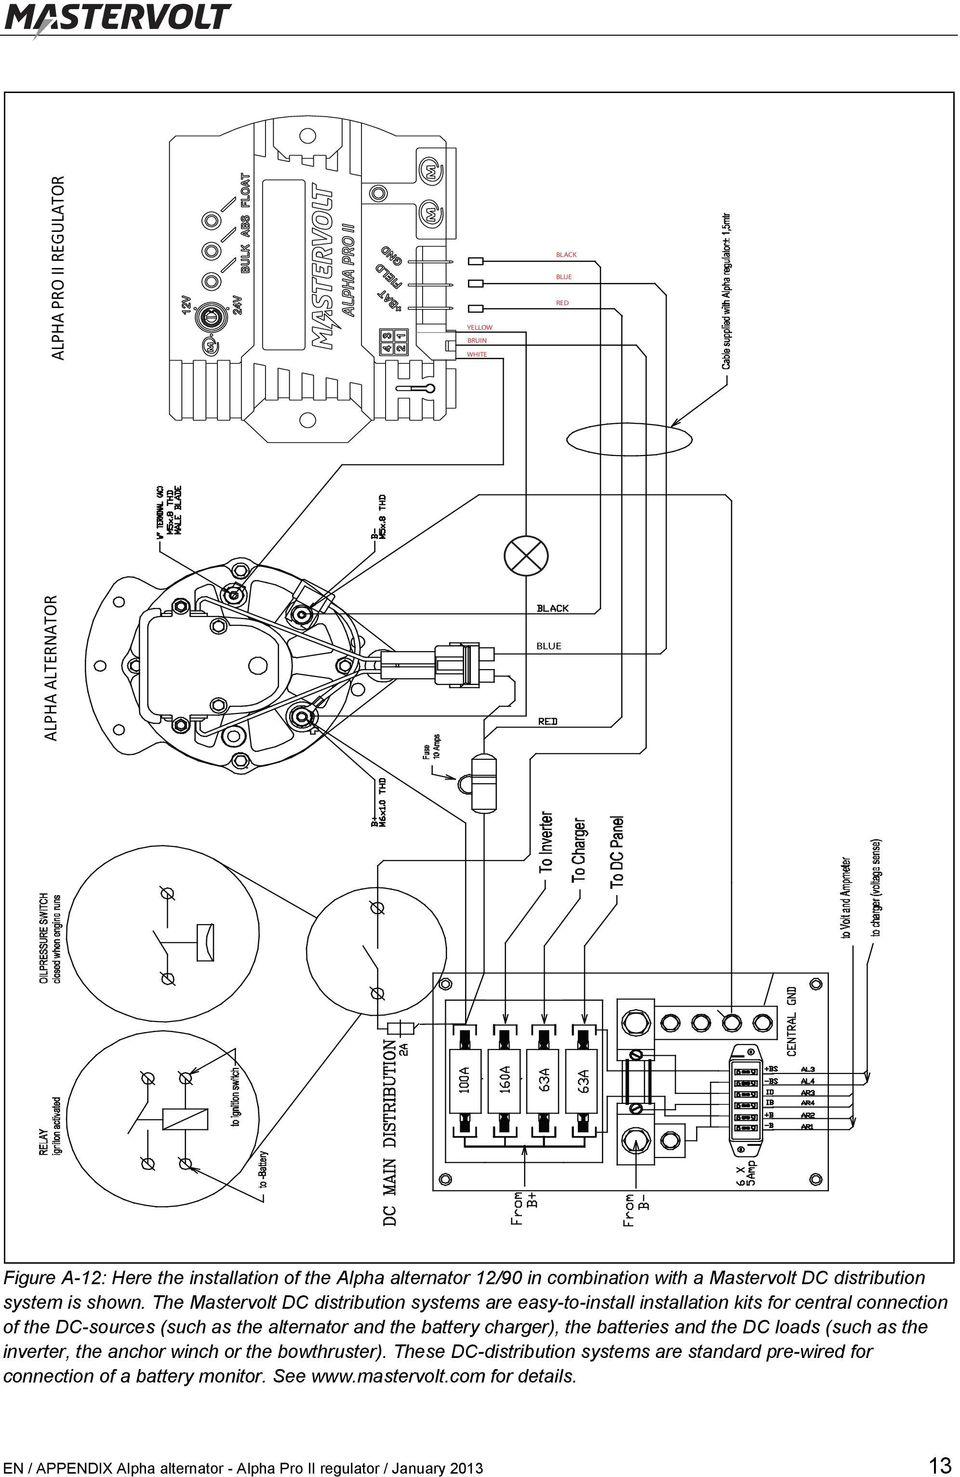 Appendix Anhang Annexe Pdf Alpha Battery Charger Wiring Diagram The Mastervolt Dc Distribution Systems Are Easy To Install Installation Kits For Central Connection